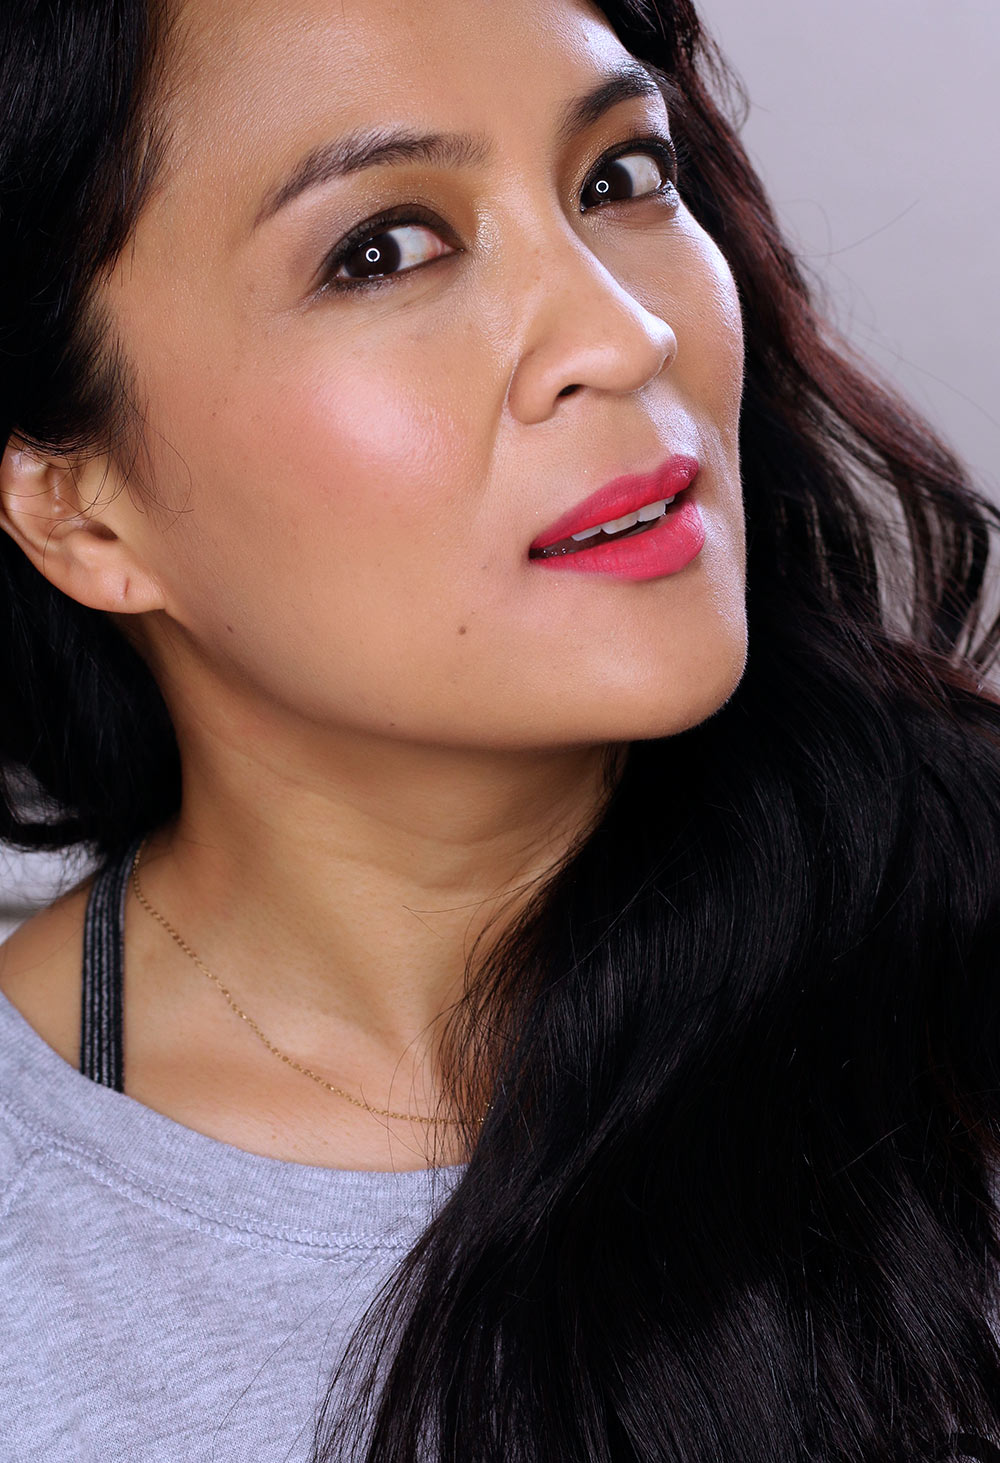 Urban Decay Tryst Vice Lipstick on Olive Skin